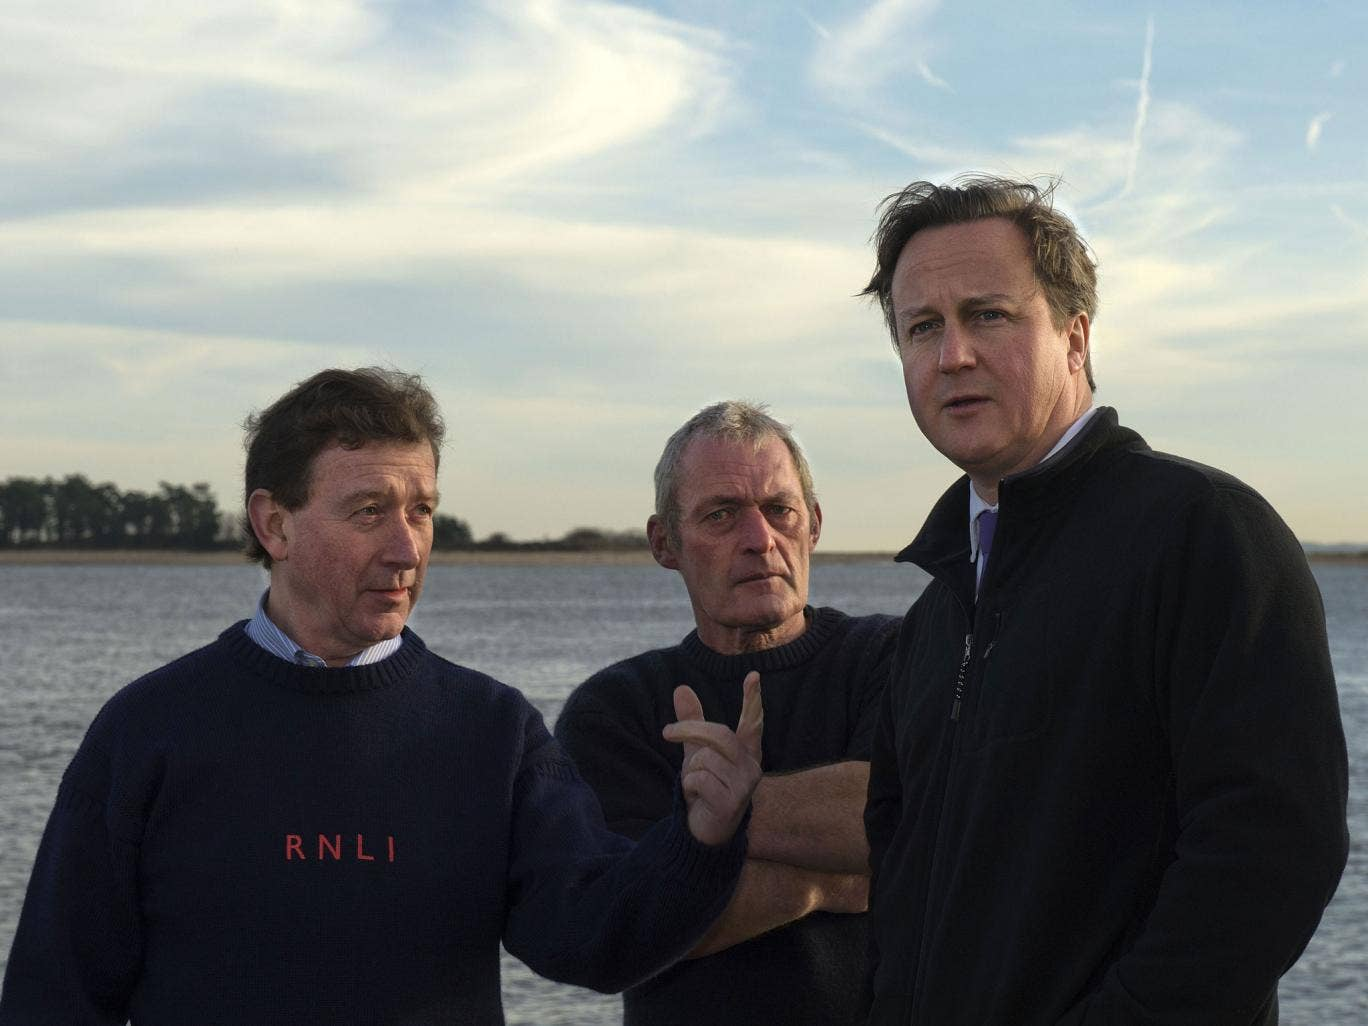 David Cameron visited East Anglia at the times of the floods to see the damage and meet members of the local emergency services